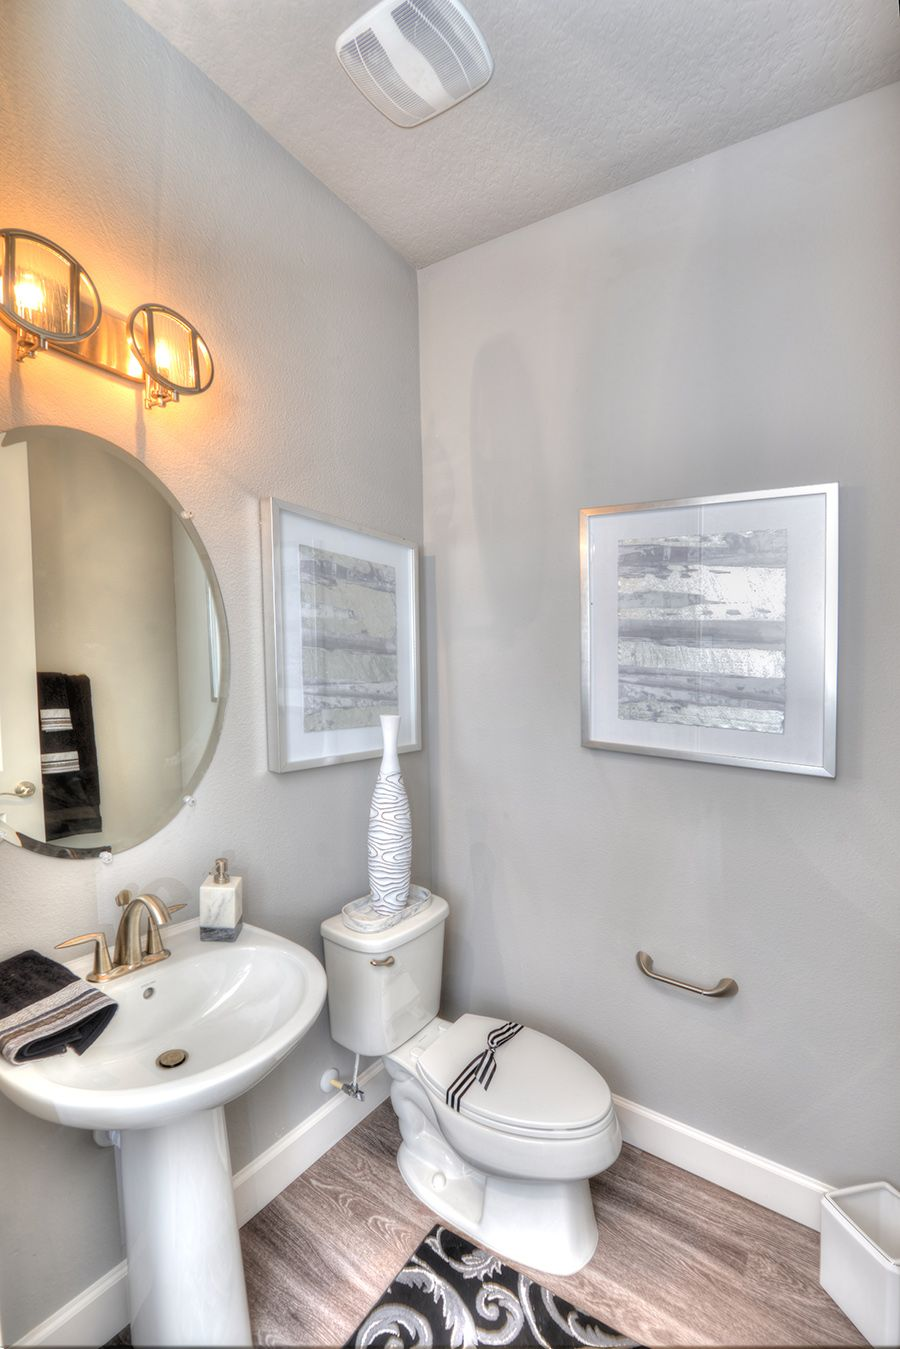 Bathroom featured in the Santa Rosa By ICI Homes in Jacksonville-St. Augustine, FL